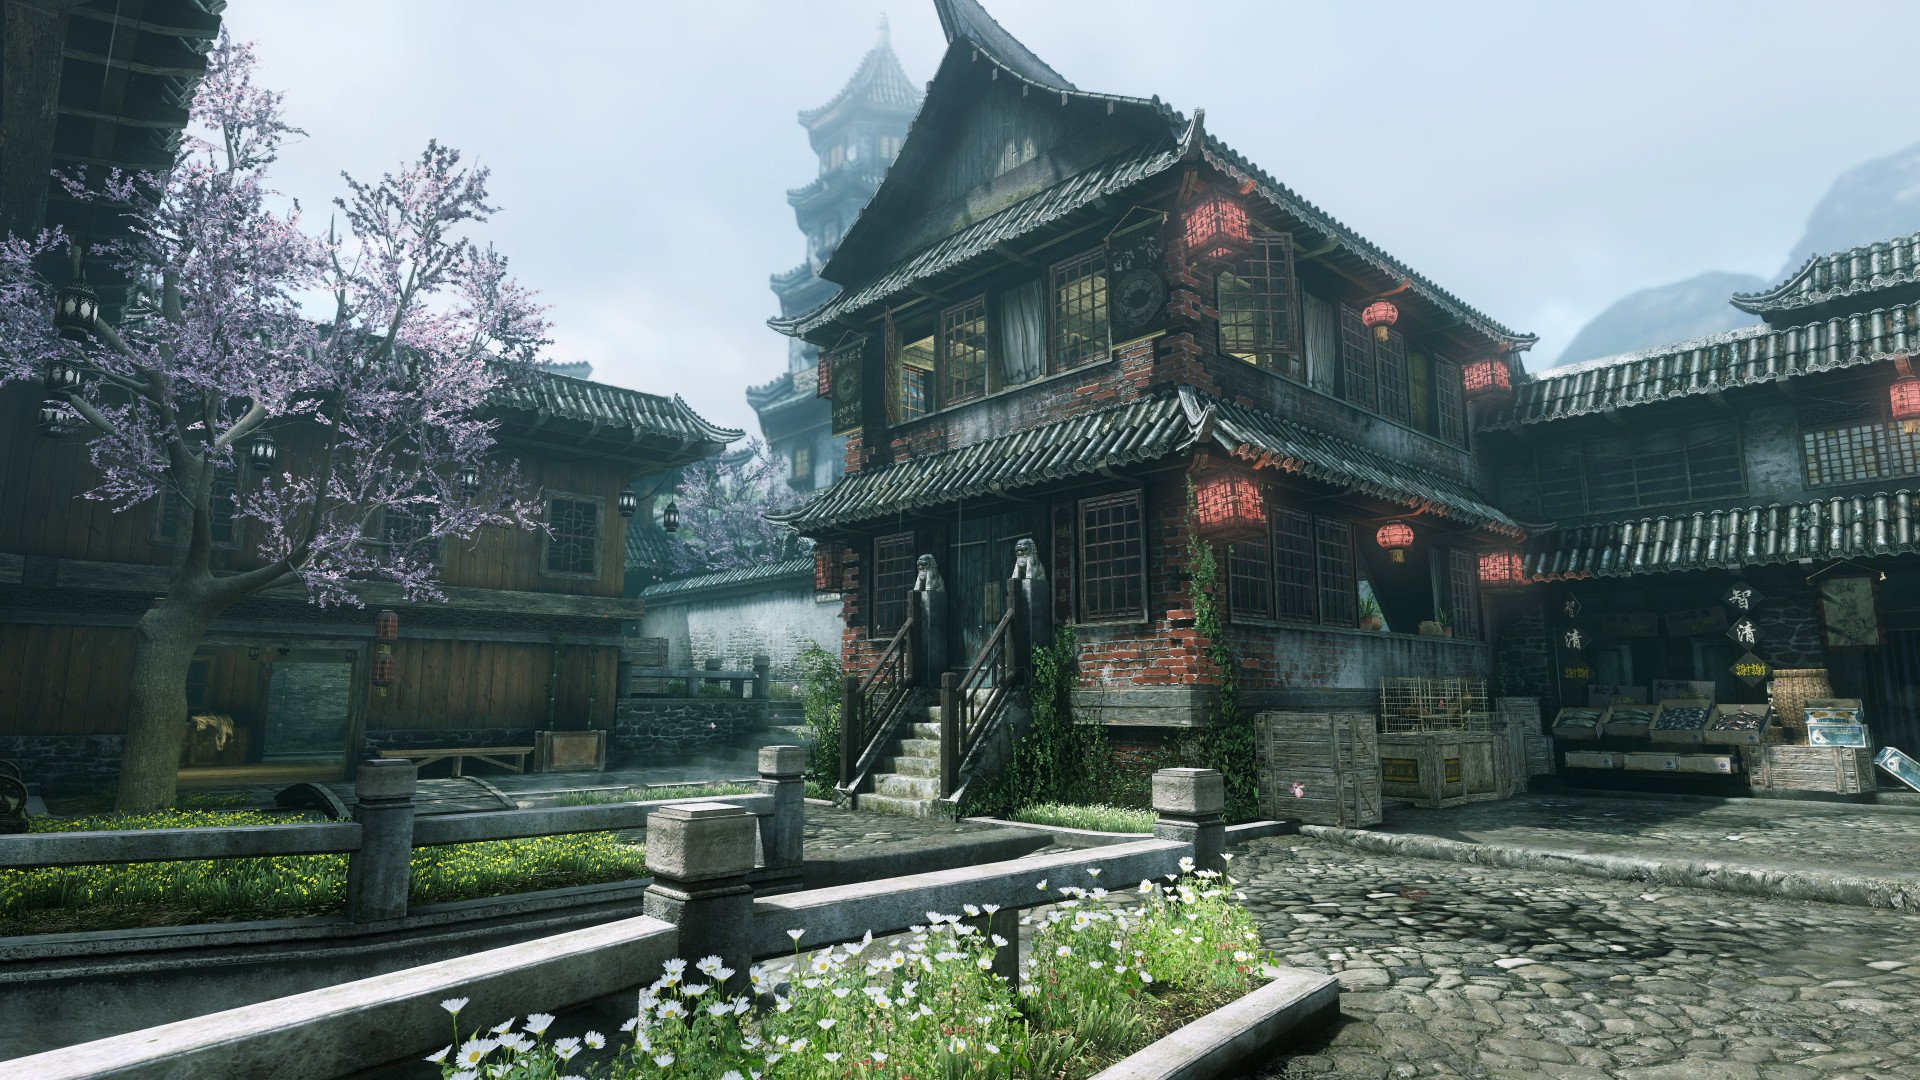 Dynasty   Call of Duty Wiki   FANDOM powered by Wikia on call of duty dlc maps, call of ghost map pack, call to fall, unofficial call of duty maps, call duty ghost multiplayer, call of duty multiplayer maps, black ops 2 new maps, call of duty 3 maps, call of duty mp maps, ghosts dlc maps, ghost multiplayer maps,